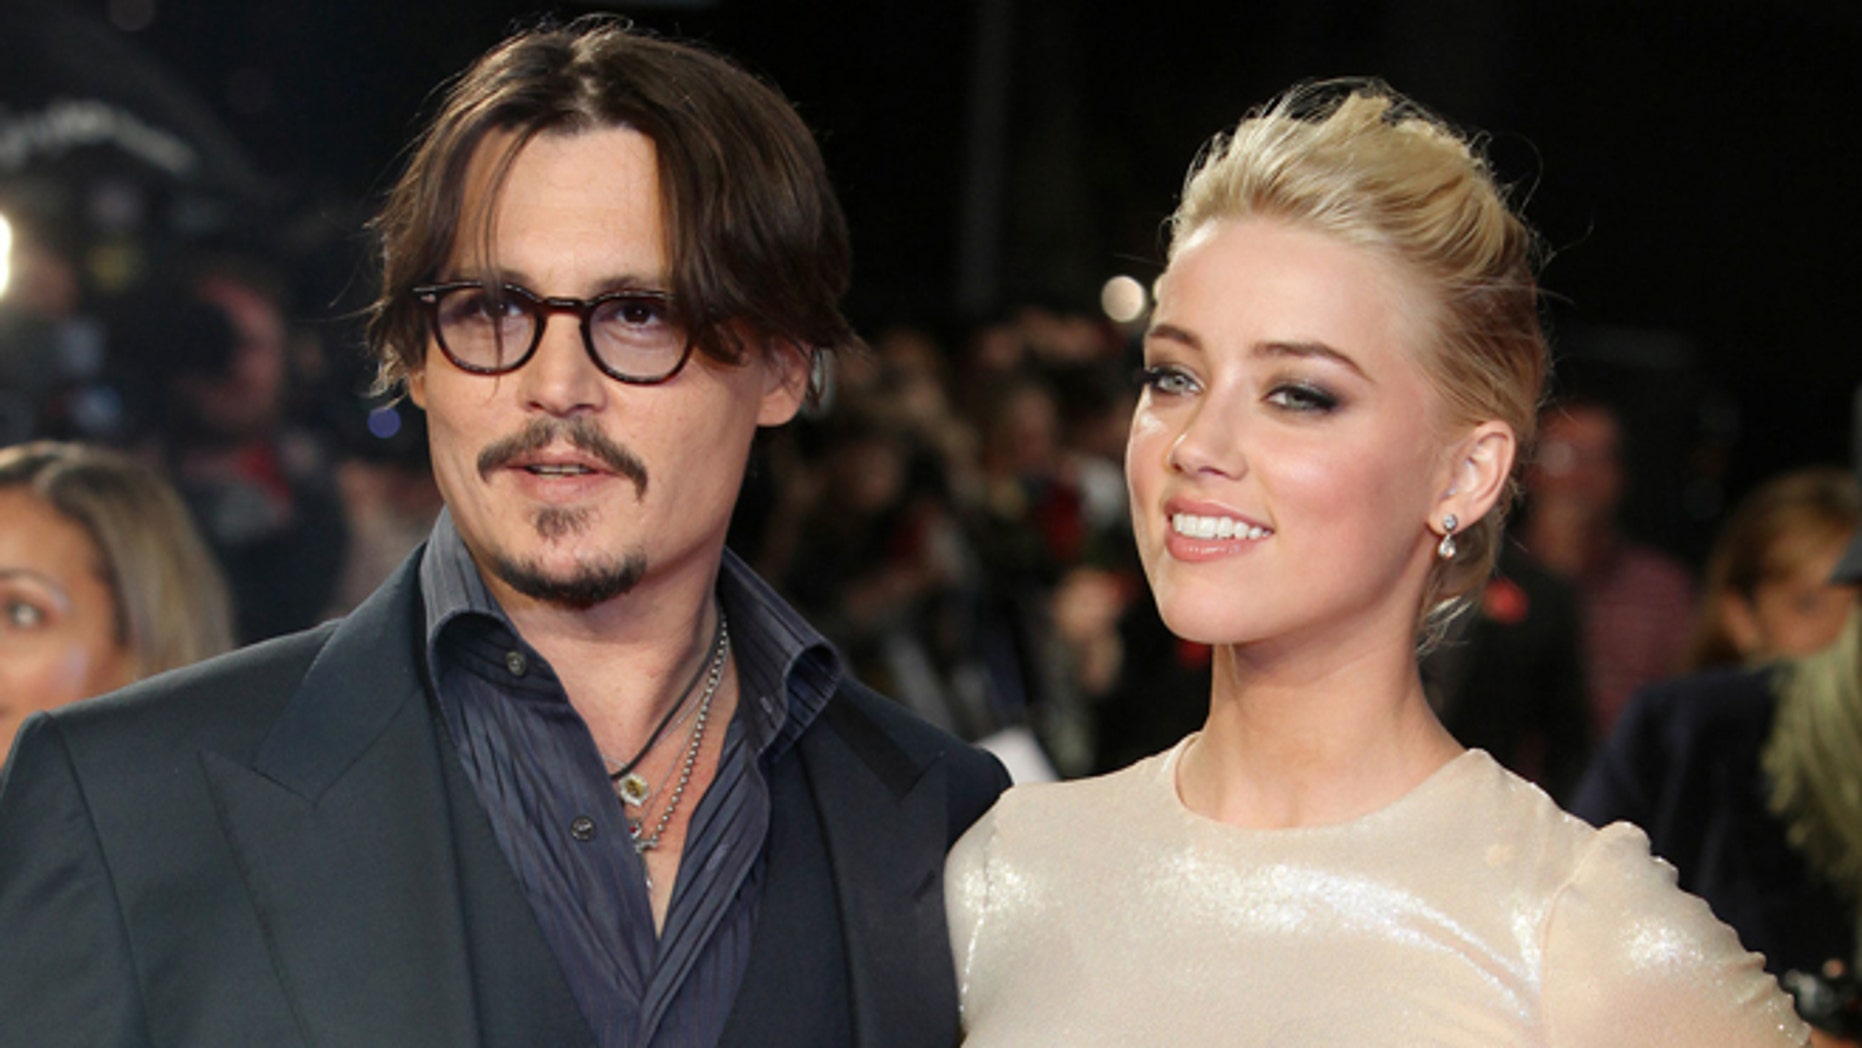 Johnny Depp and Amber Heard went through a bruising divorce earlier this year.